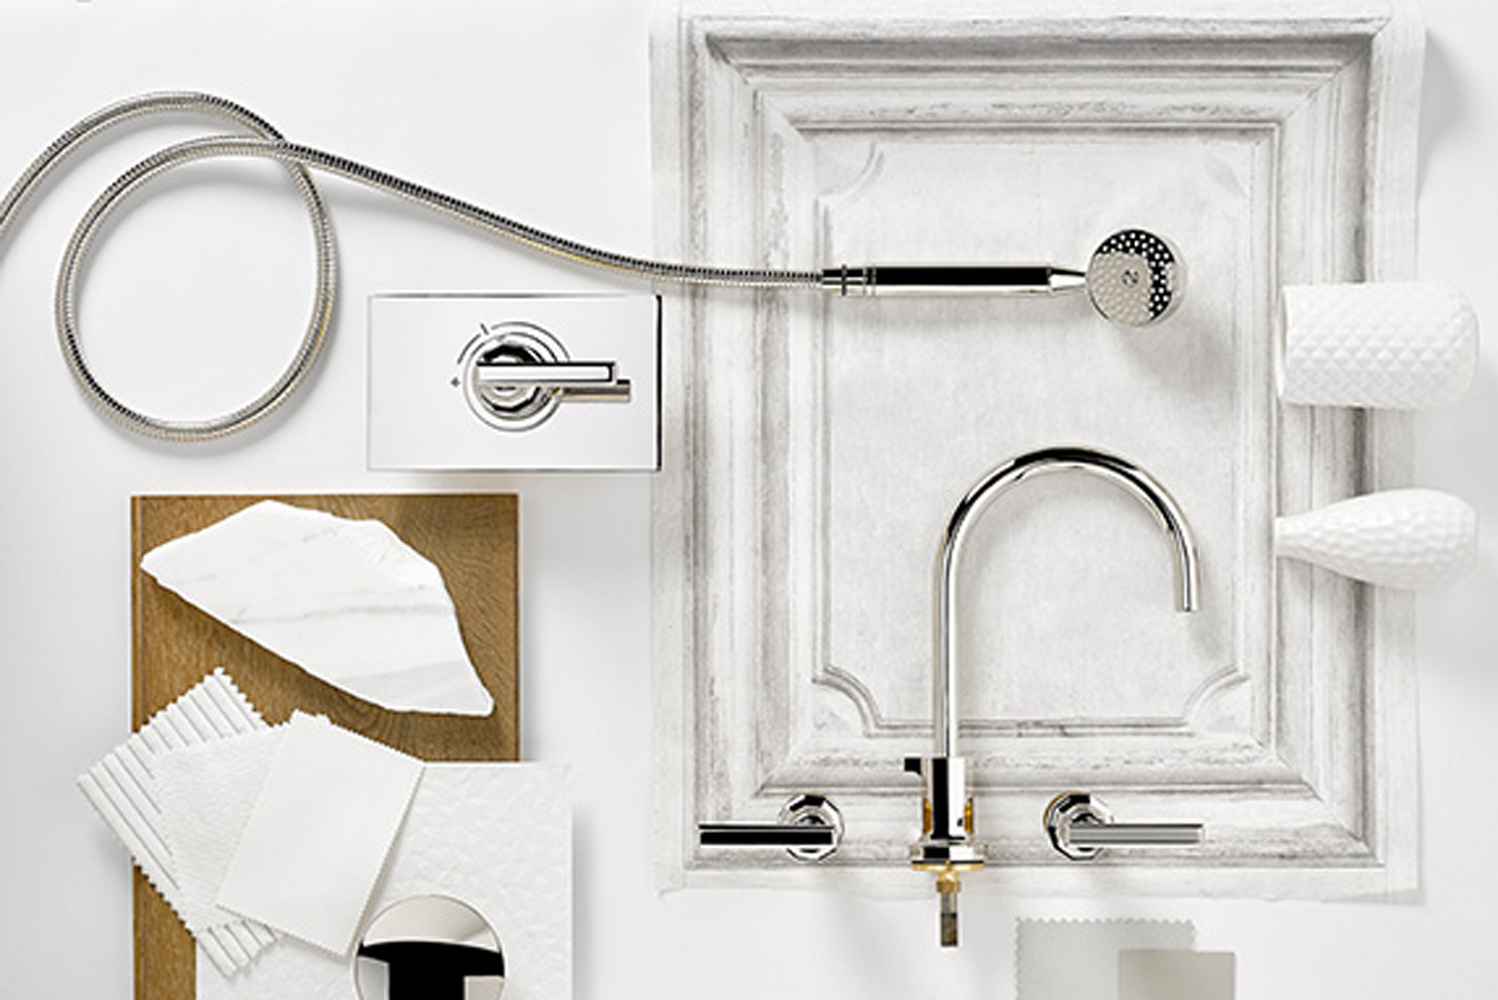 THG Paris introduced a new 2018 collection from French design duo Gilles & Boissier, the Les Ondes collection of faucets.